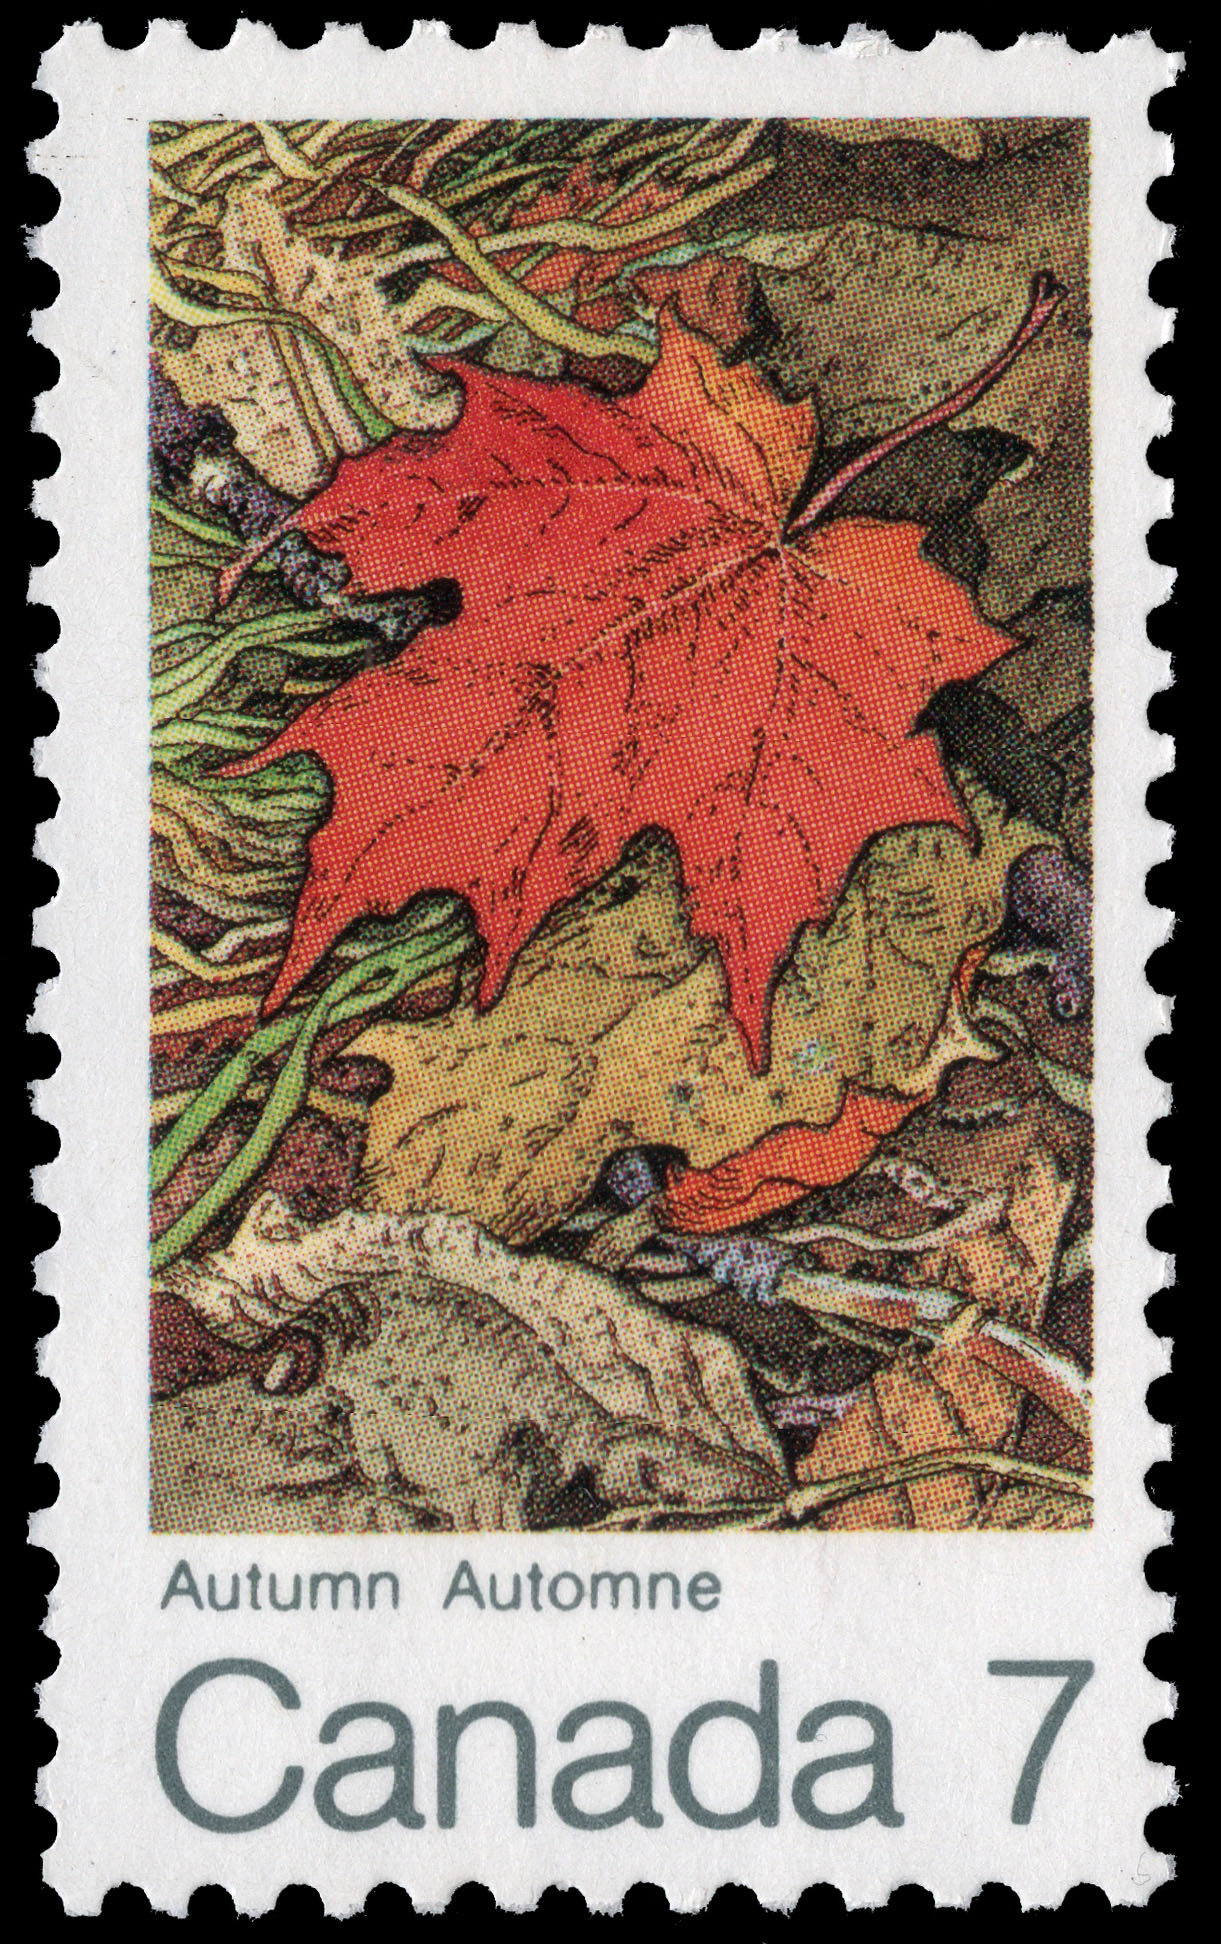 Autumn Canada Postage Stamp | The Maple in four Seasons